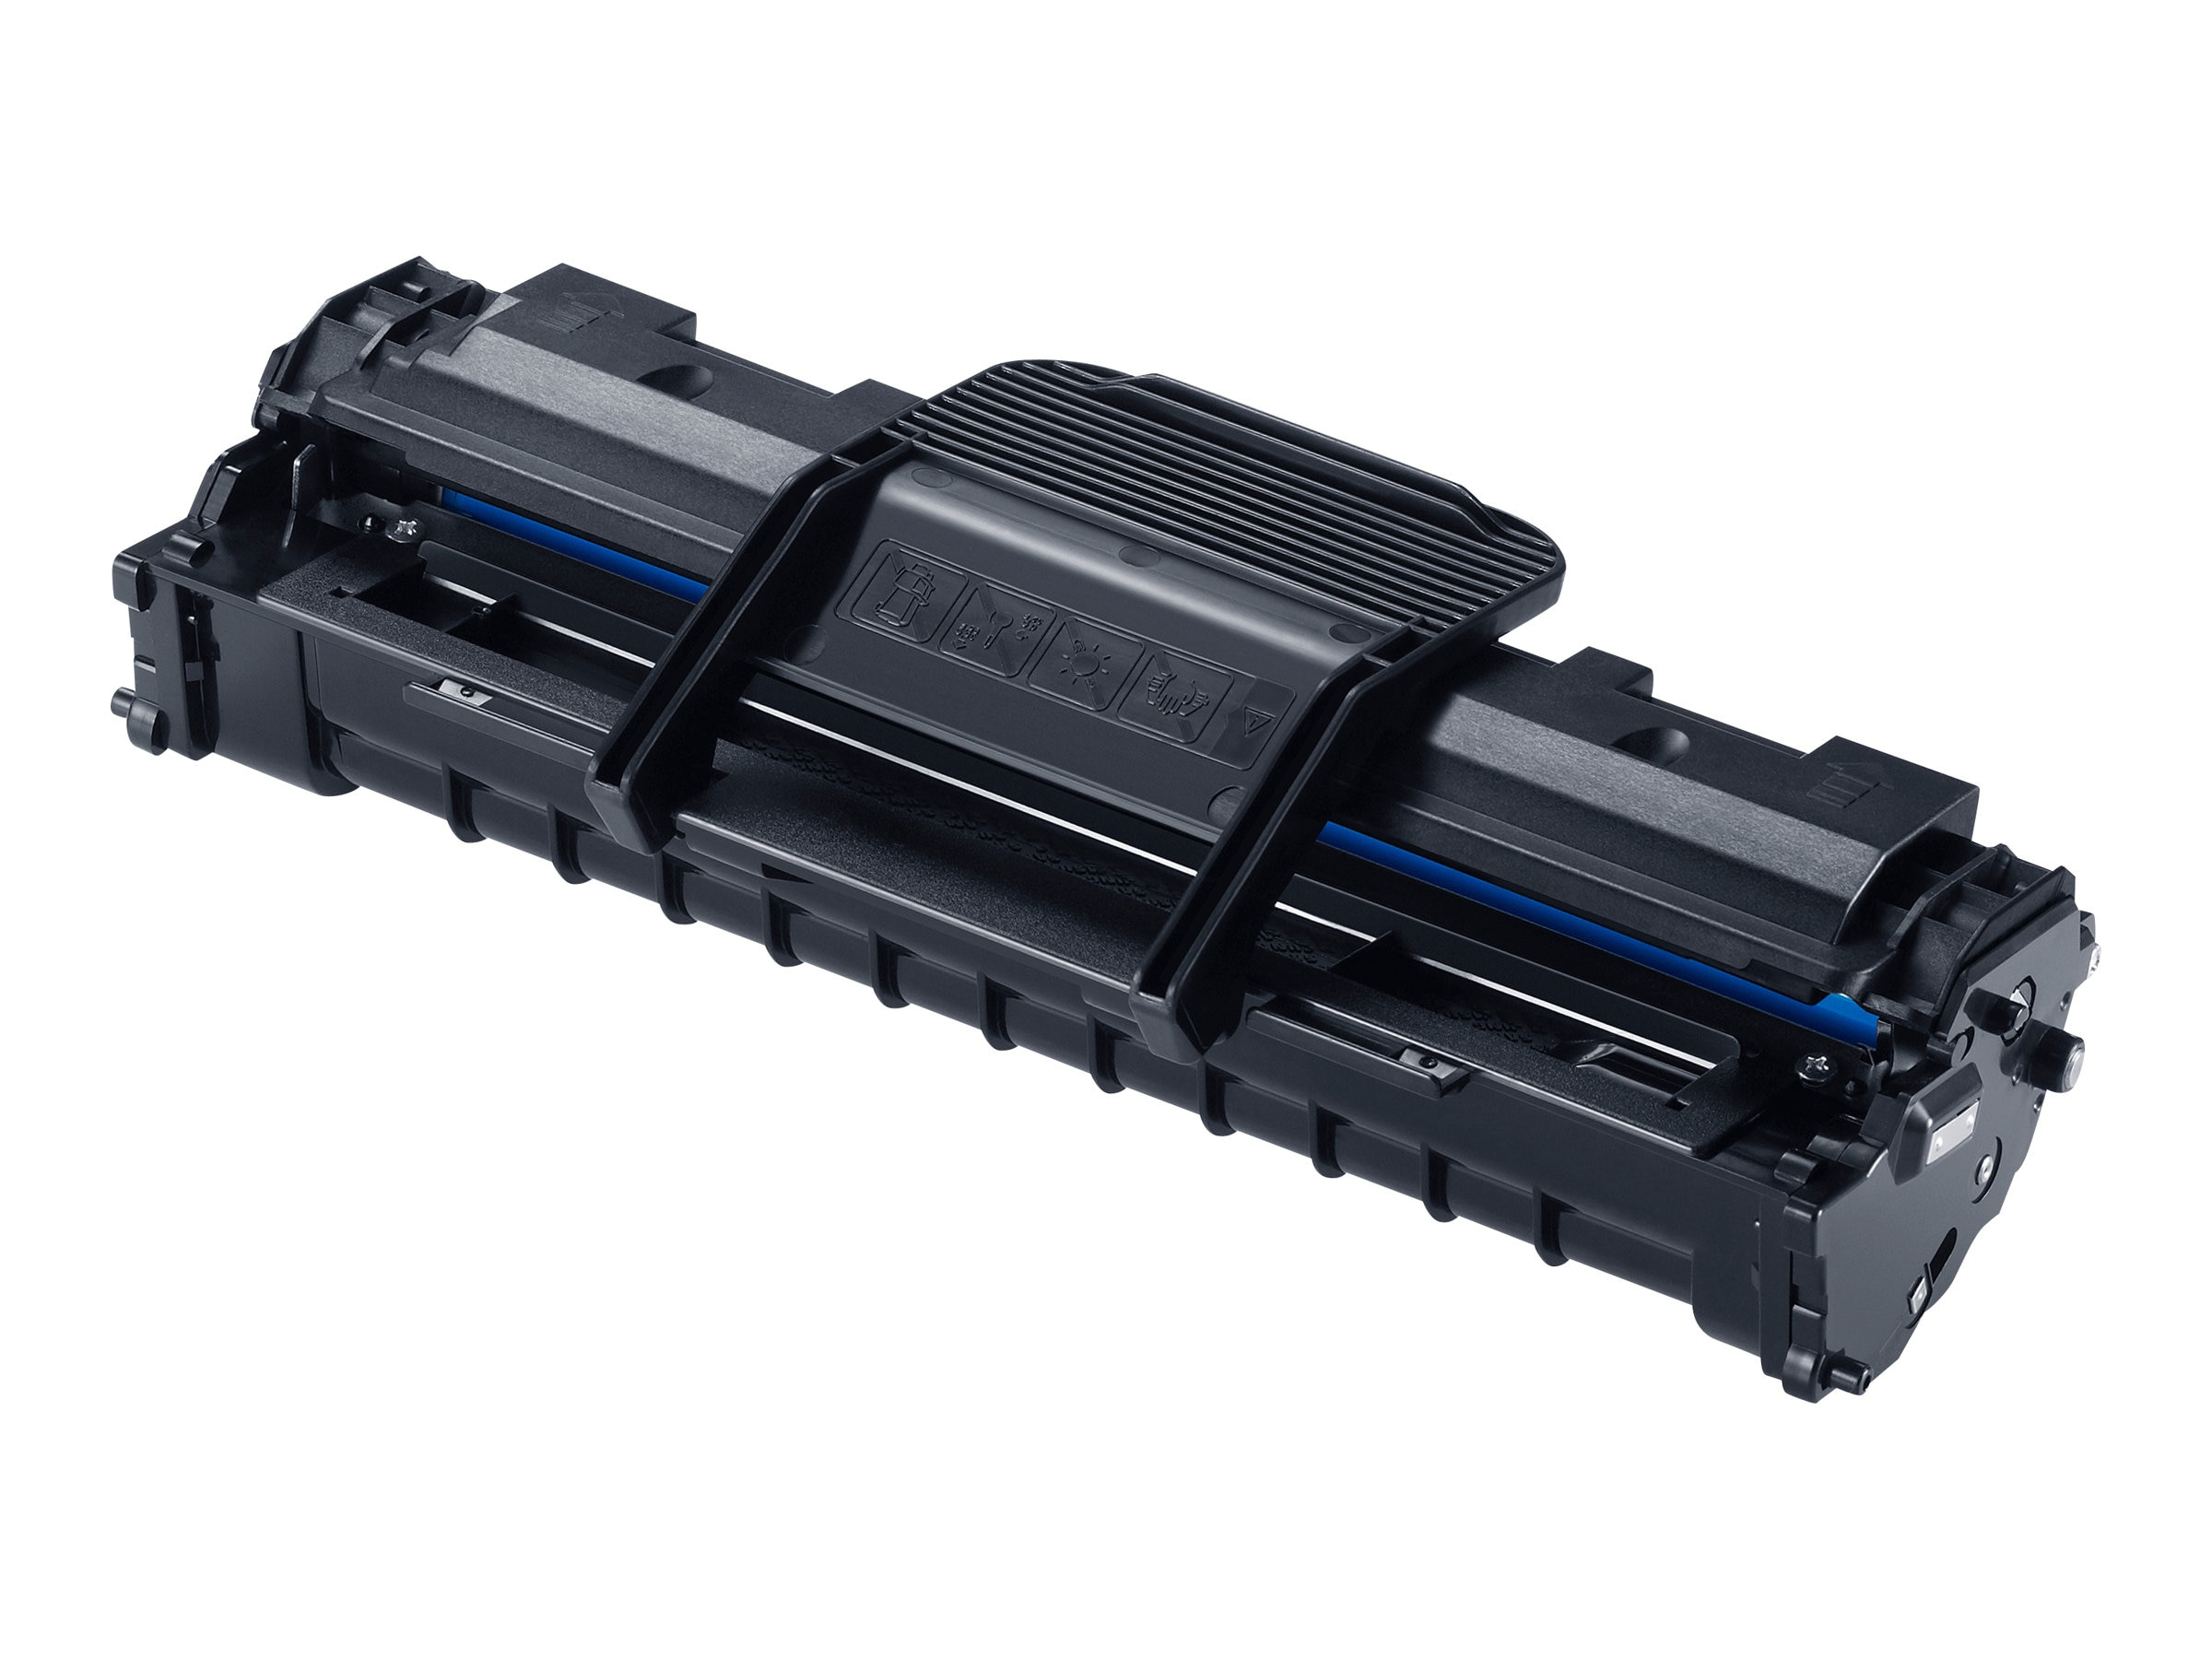 Samsung Black Toner Cartridge for ML-1610, ML-1615, ML-1620, ML-1625, ML-2010, ML-2015, ML-2020, ML-2510, MLT-D119S